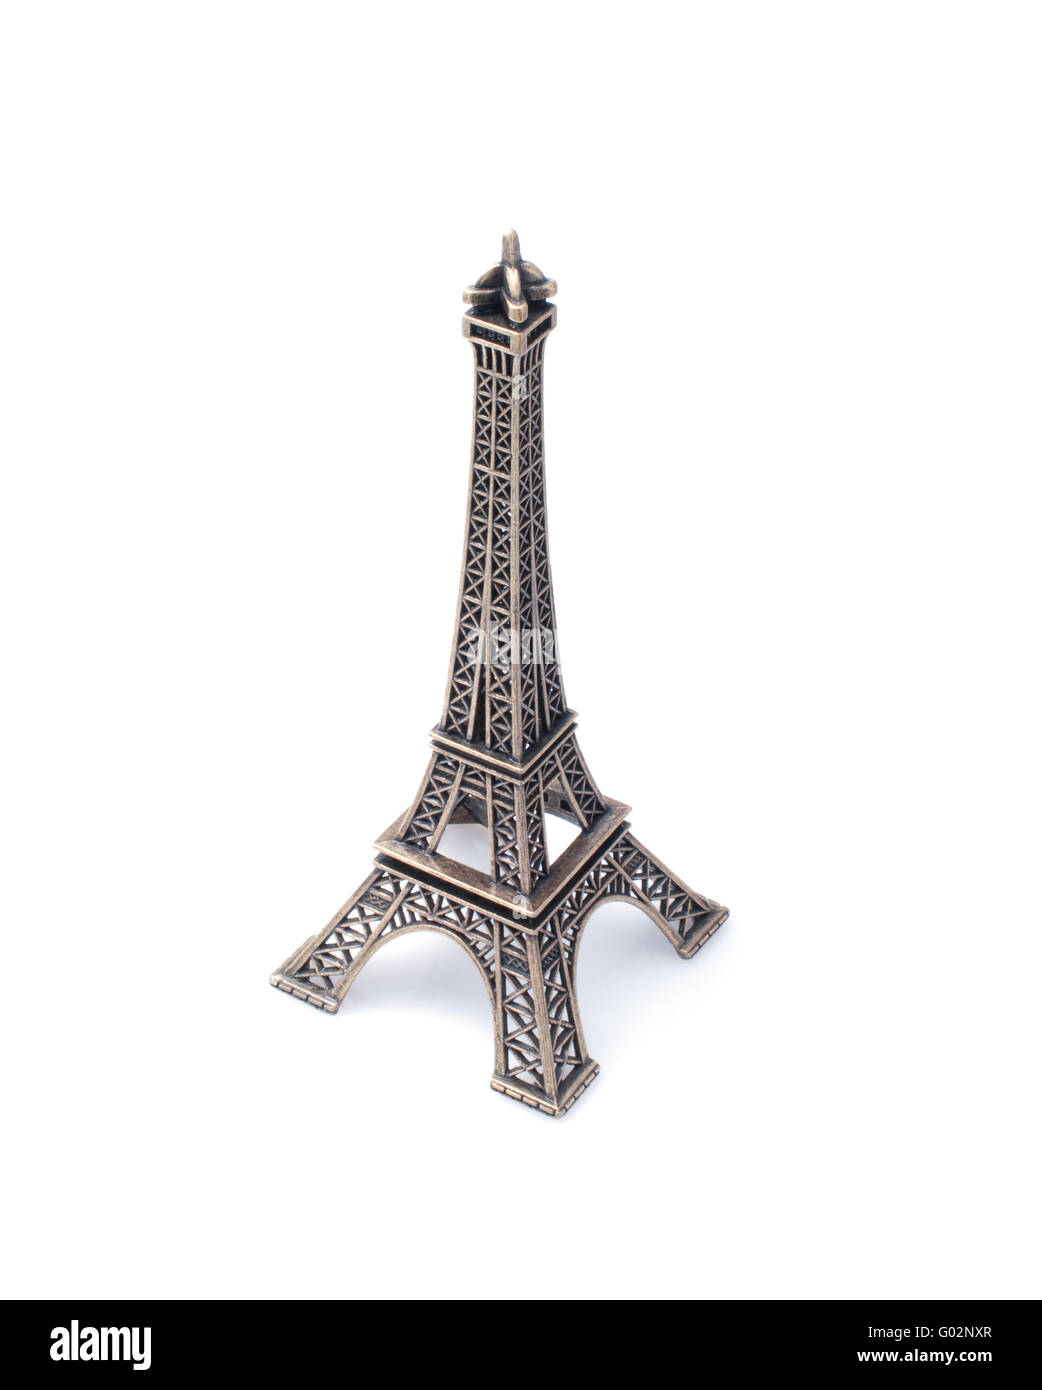 Small  copy of Eiffel tower figurine isolated on white background - Stock Image